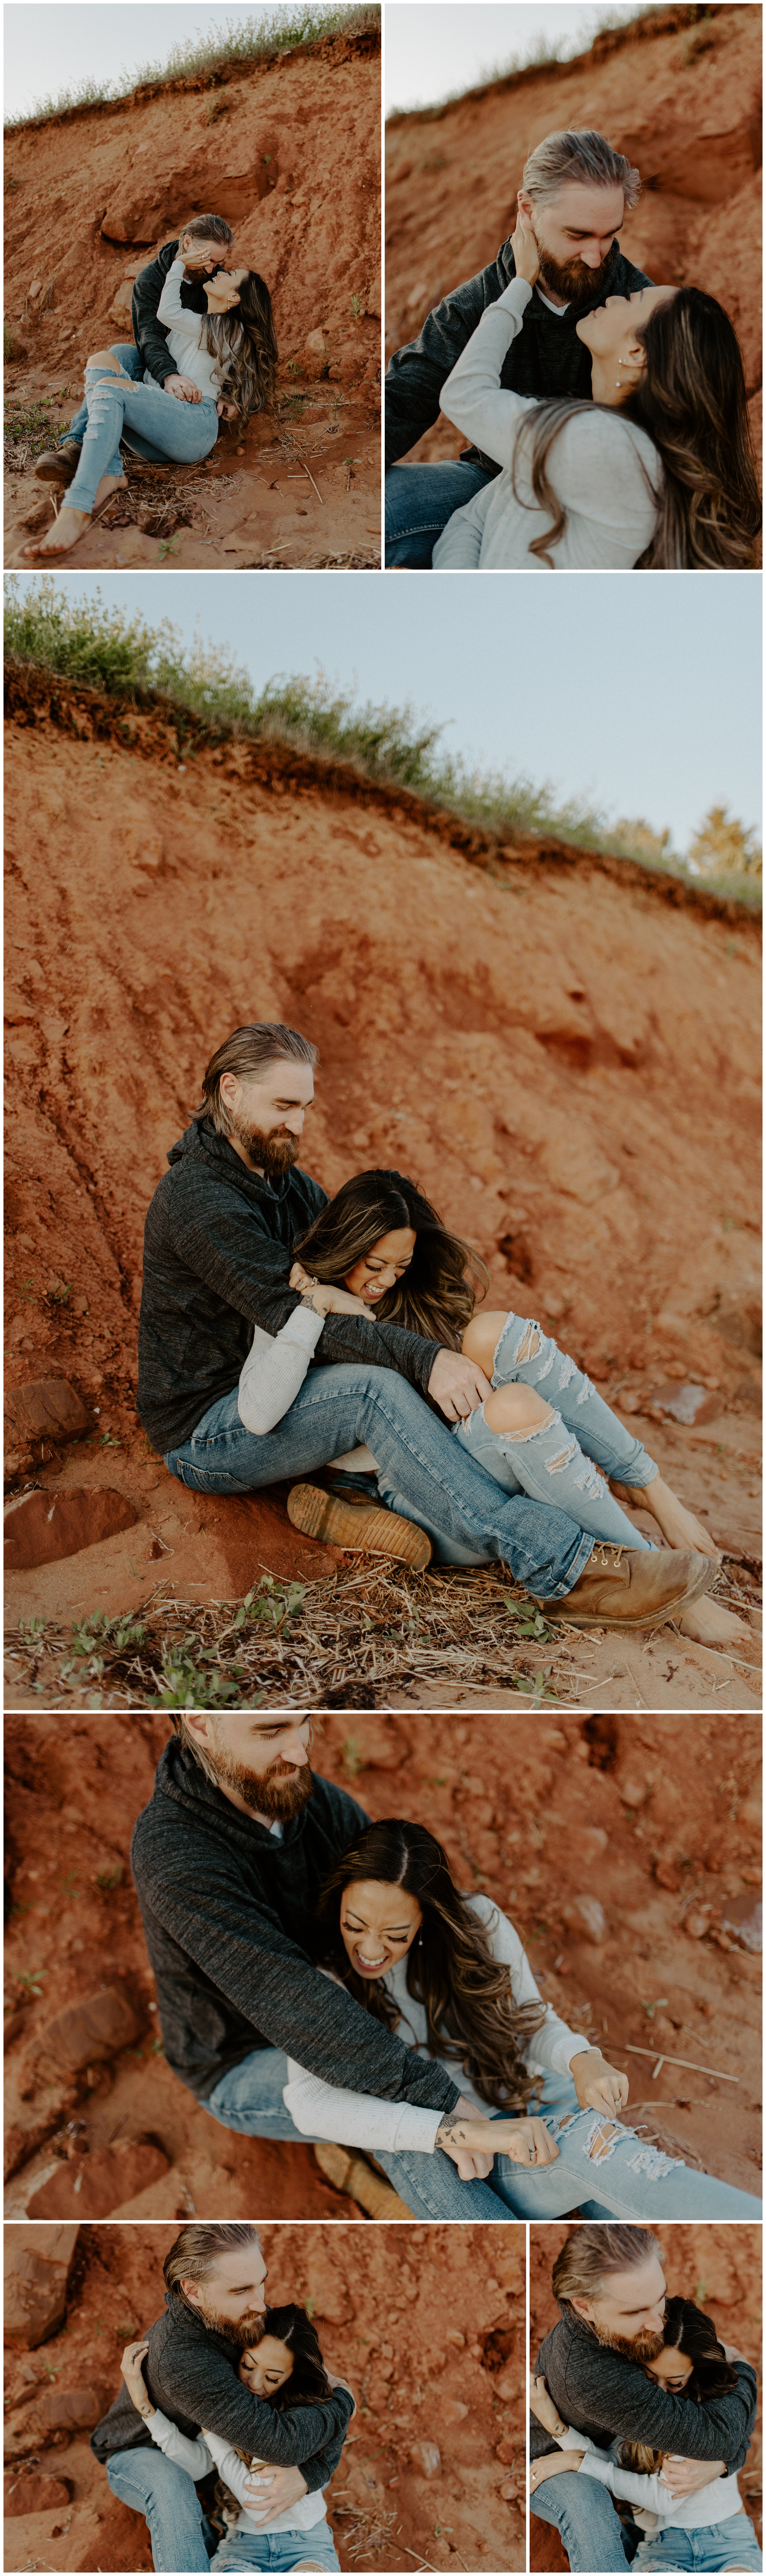 Red Sand Beach Engagements On Prince Edward Island at Sunset | Jessica Heron Images_0011.jpg